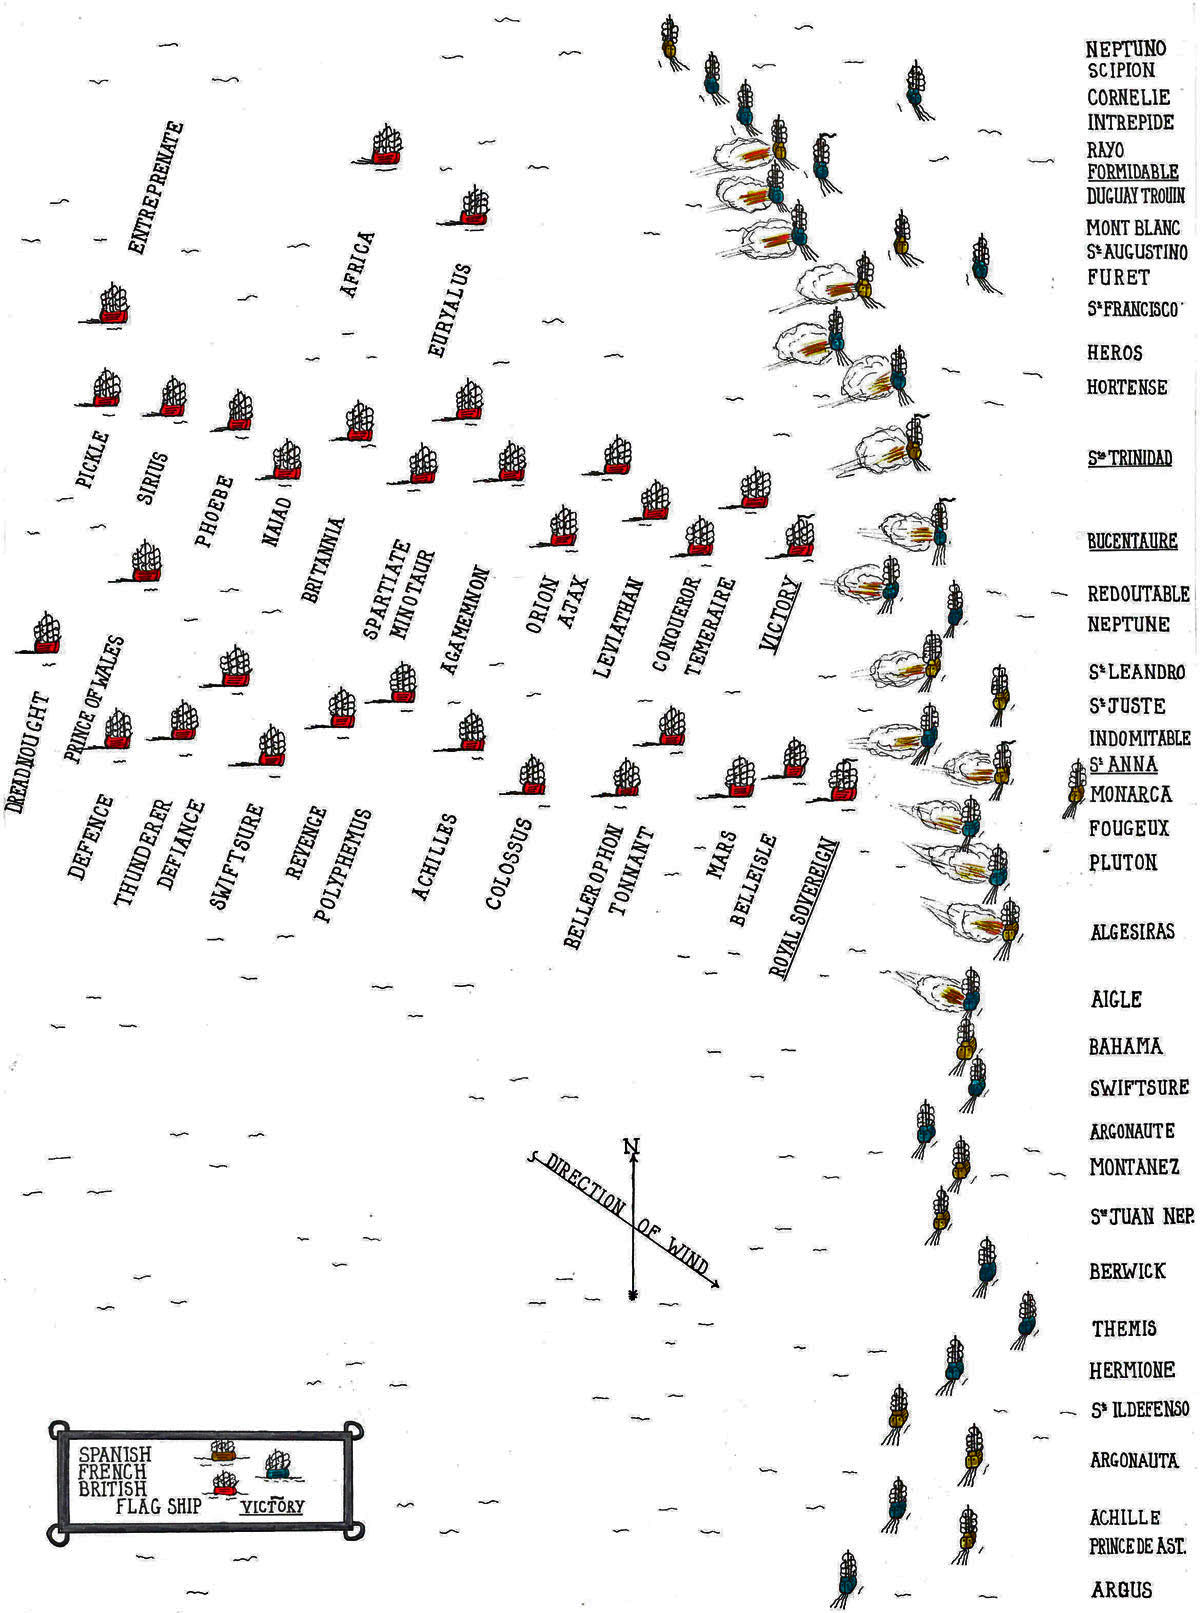 Map of the Battle of Trafalgar on 21st October 1805 during the Napoleonic Wars: map by John Fawkes